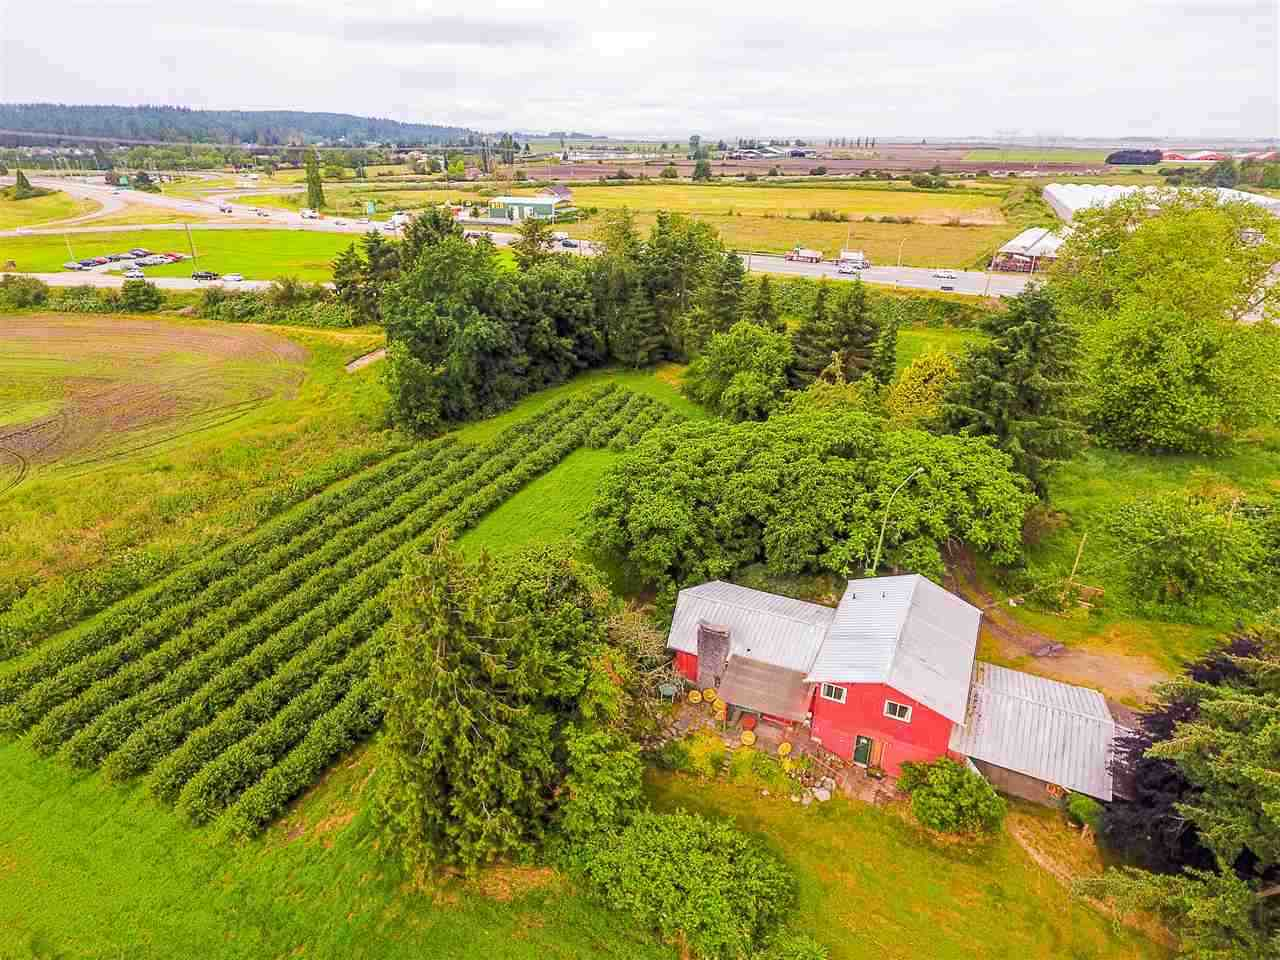 First time on a the market in 75 years! Incredibly rare and highly coveted 90 acre parcel in strategic location close to Hwy 99, US Border and just minutes to major South Surrey & White Rock developments. Incredible investment opportunity here! Potential for large scale agri-business. Current property contains an occupied farm house and barn. Do not disturb owners or enter premises without permission. By private appointment only. Contact listing agent for more details. 15% foreign purchaser tax not applicable.